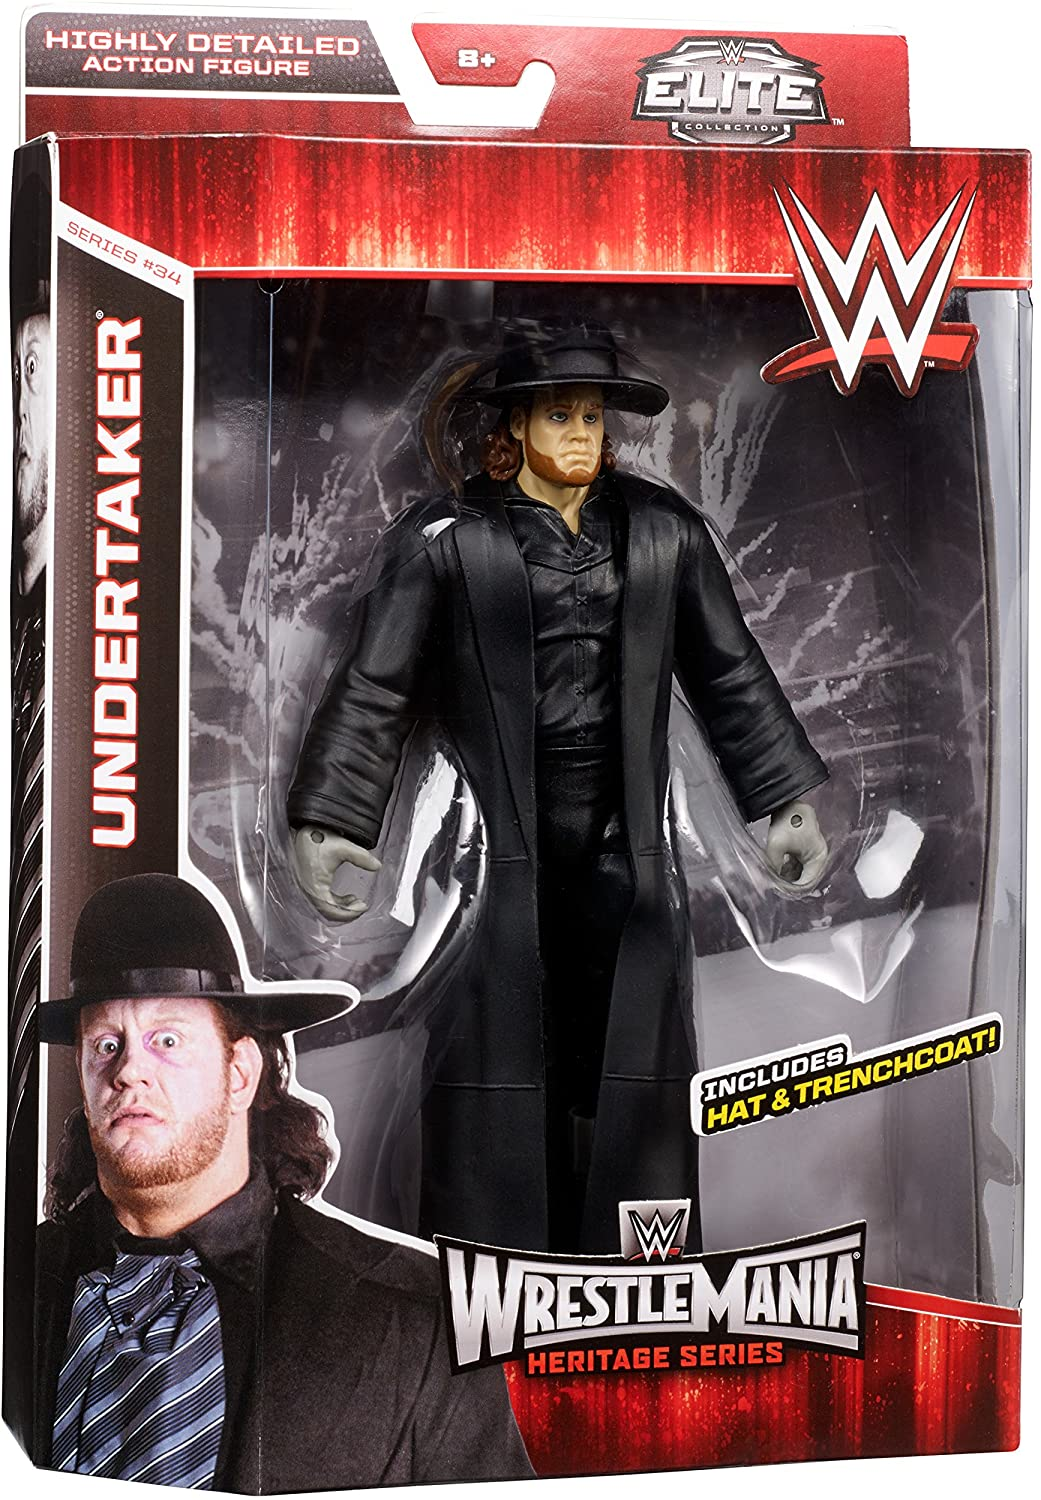 WWE Elite Collection: Undertaker